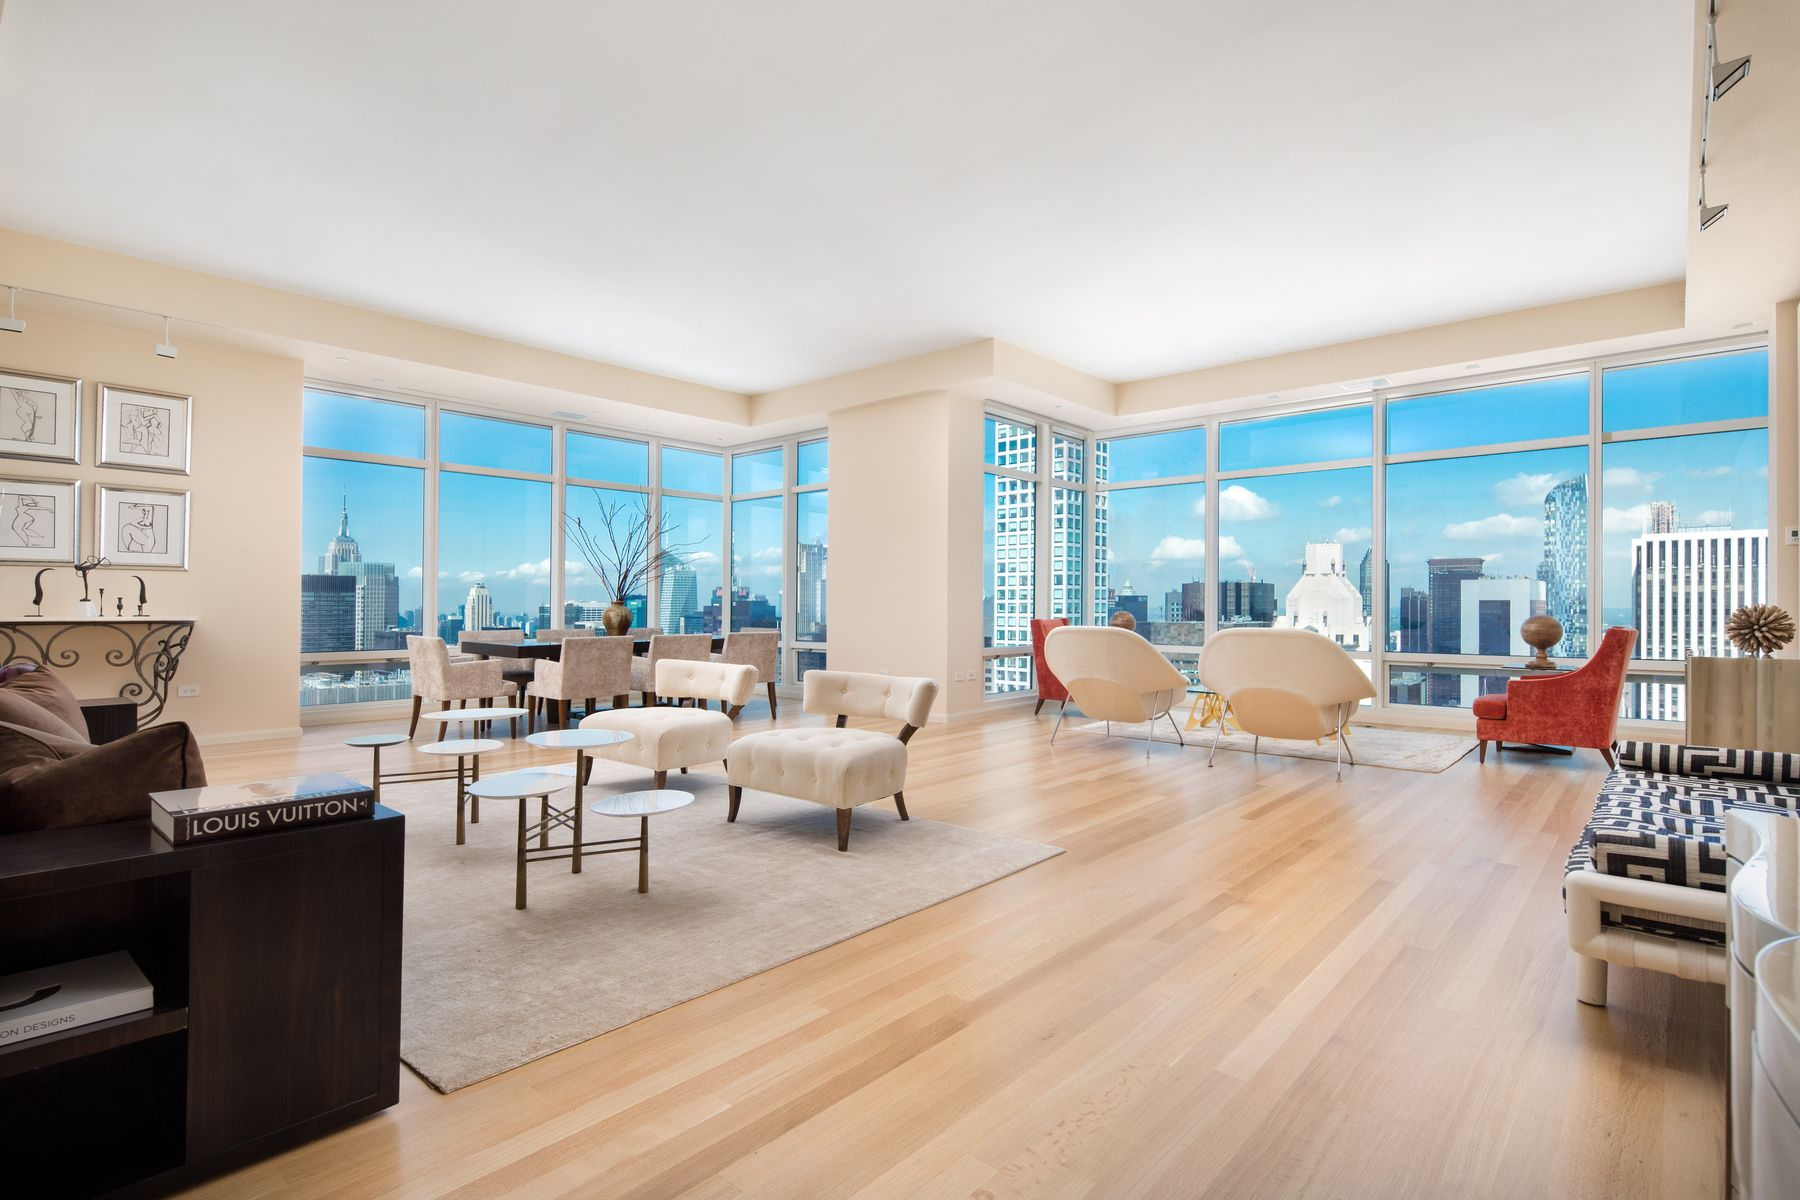 This stunning triple mint 3 Bedroom Condominium is located on a high floor at One Beacon Court, one of Manhattan's most prestigious modern landmarks. Featuring breathtaking panoramic views of Central Park, the masterfully proportioned rooms with 11 foot ceilings and all new floors, include the sophisticated Entry Gallery which leads into the expansive sun-filled Living Room and Dining Room lined with floor to ceiling windows showcasing the Park and the city skyline, the East River and the Hudson River.The spacious all-new custom Kitchen and Breakfast Area is equipped with the best appliances.A private west-facing Master Bedroom Suite includes a custom Dressing Room, large walk-in closet and a lavish Spa Bathroom. In a separate wing is an additional Bedroom with en-suite marble Bathroom, a Library or 3rd Bedroom with en-suite Bath and a Laundry Room complete with a sink and custom cabinetry.Flawless renovation with remarkable finishes and paneling throughout, stateof- the-art lighting, motorized shades, CAC and sound system. One Beacon Court everyday luxuries include: fully equipped fitness center, children's playroom, private entertainment suite, business lounge, doorman, and concierge.